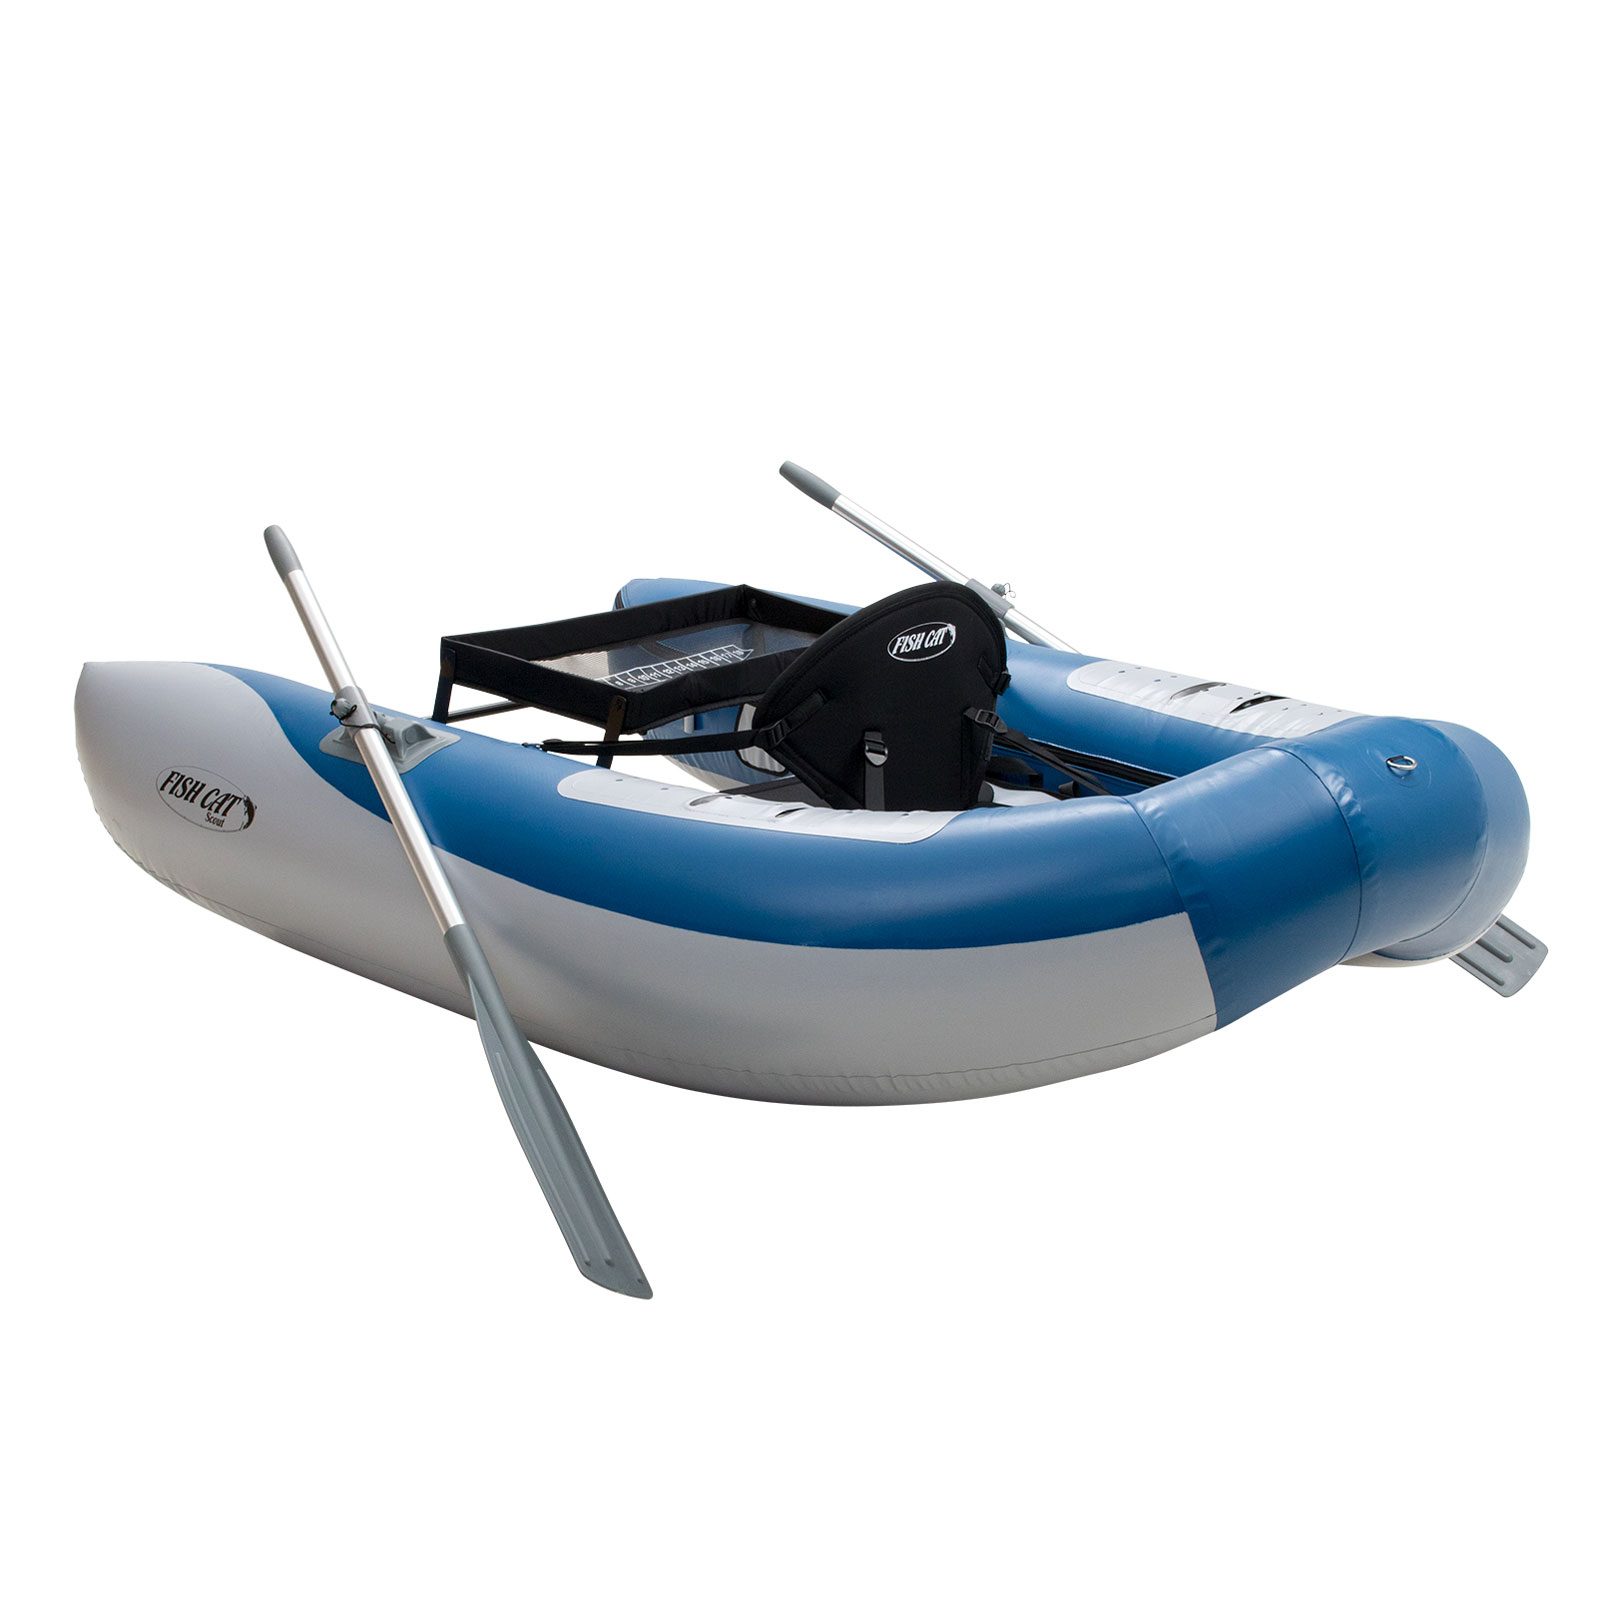 Outcast fish cat scout blue inflatable fly fishing float for Float tubes for fishing